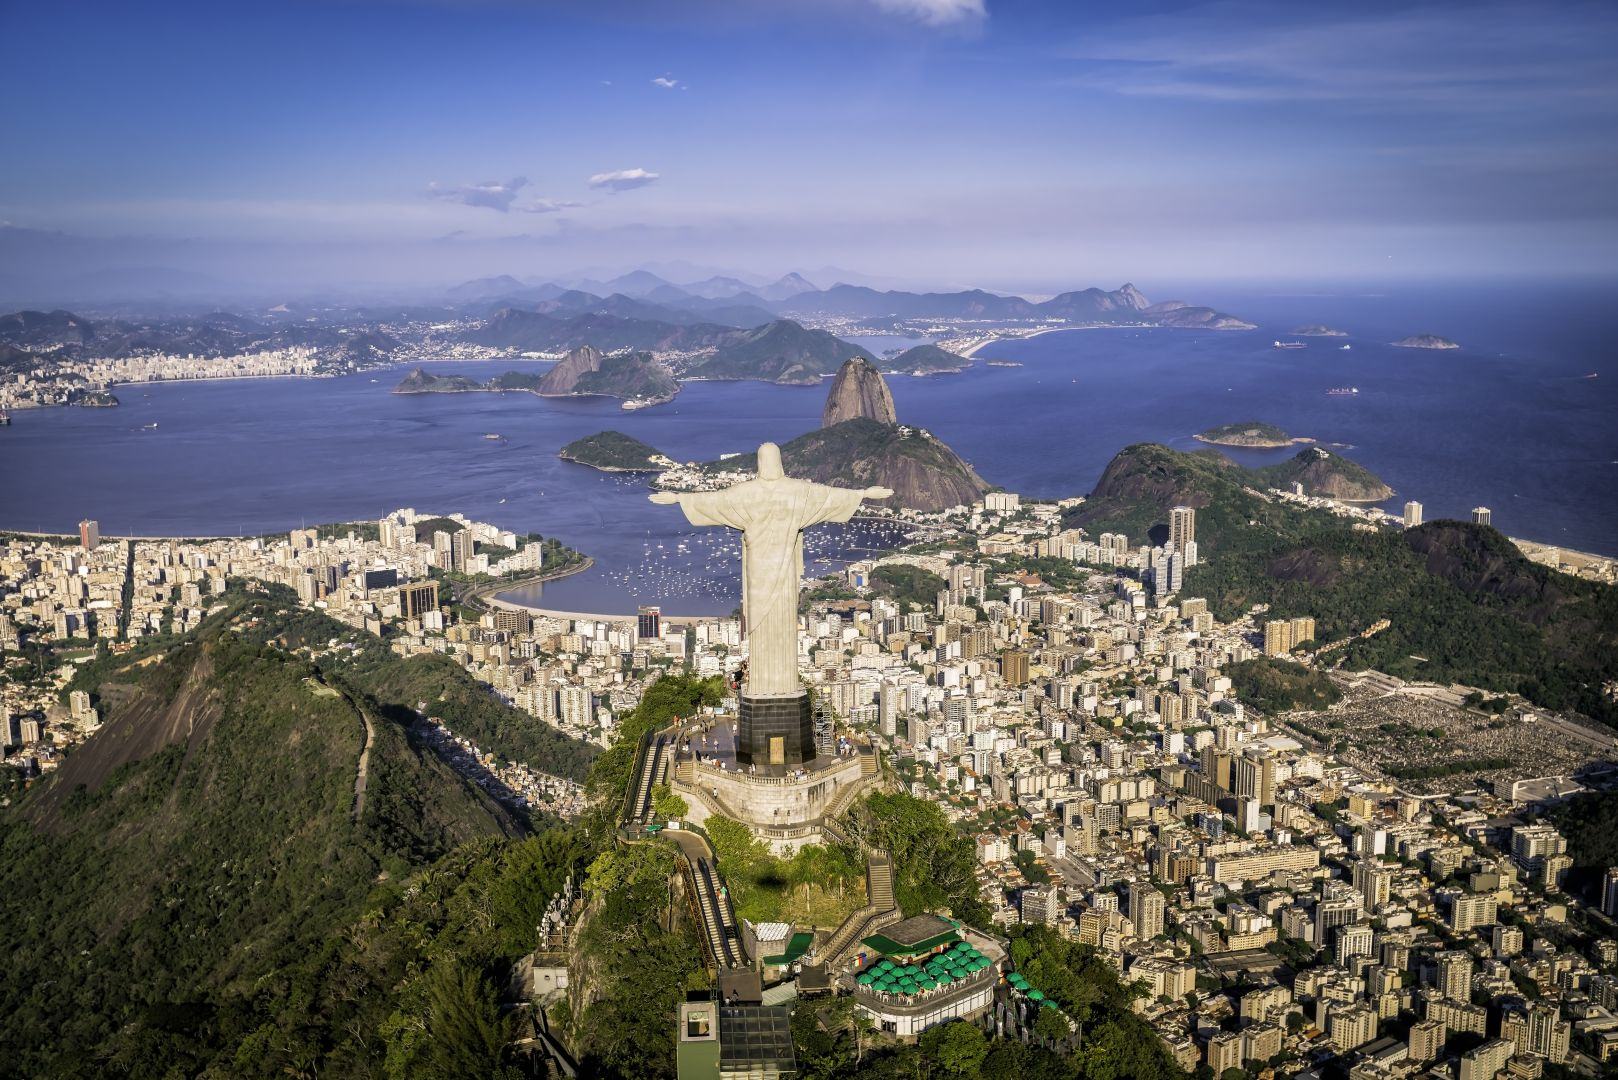 The Statue of Christ the Redeemer in Brazil, Rio 2016